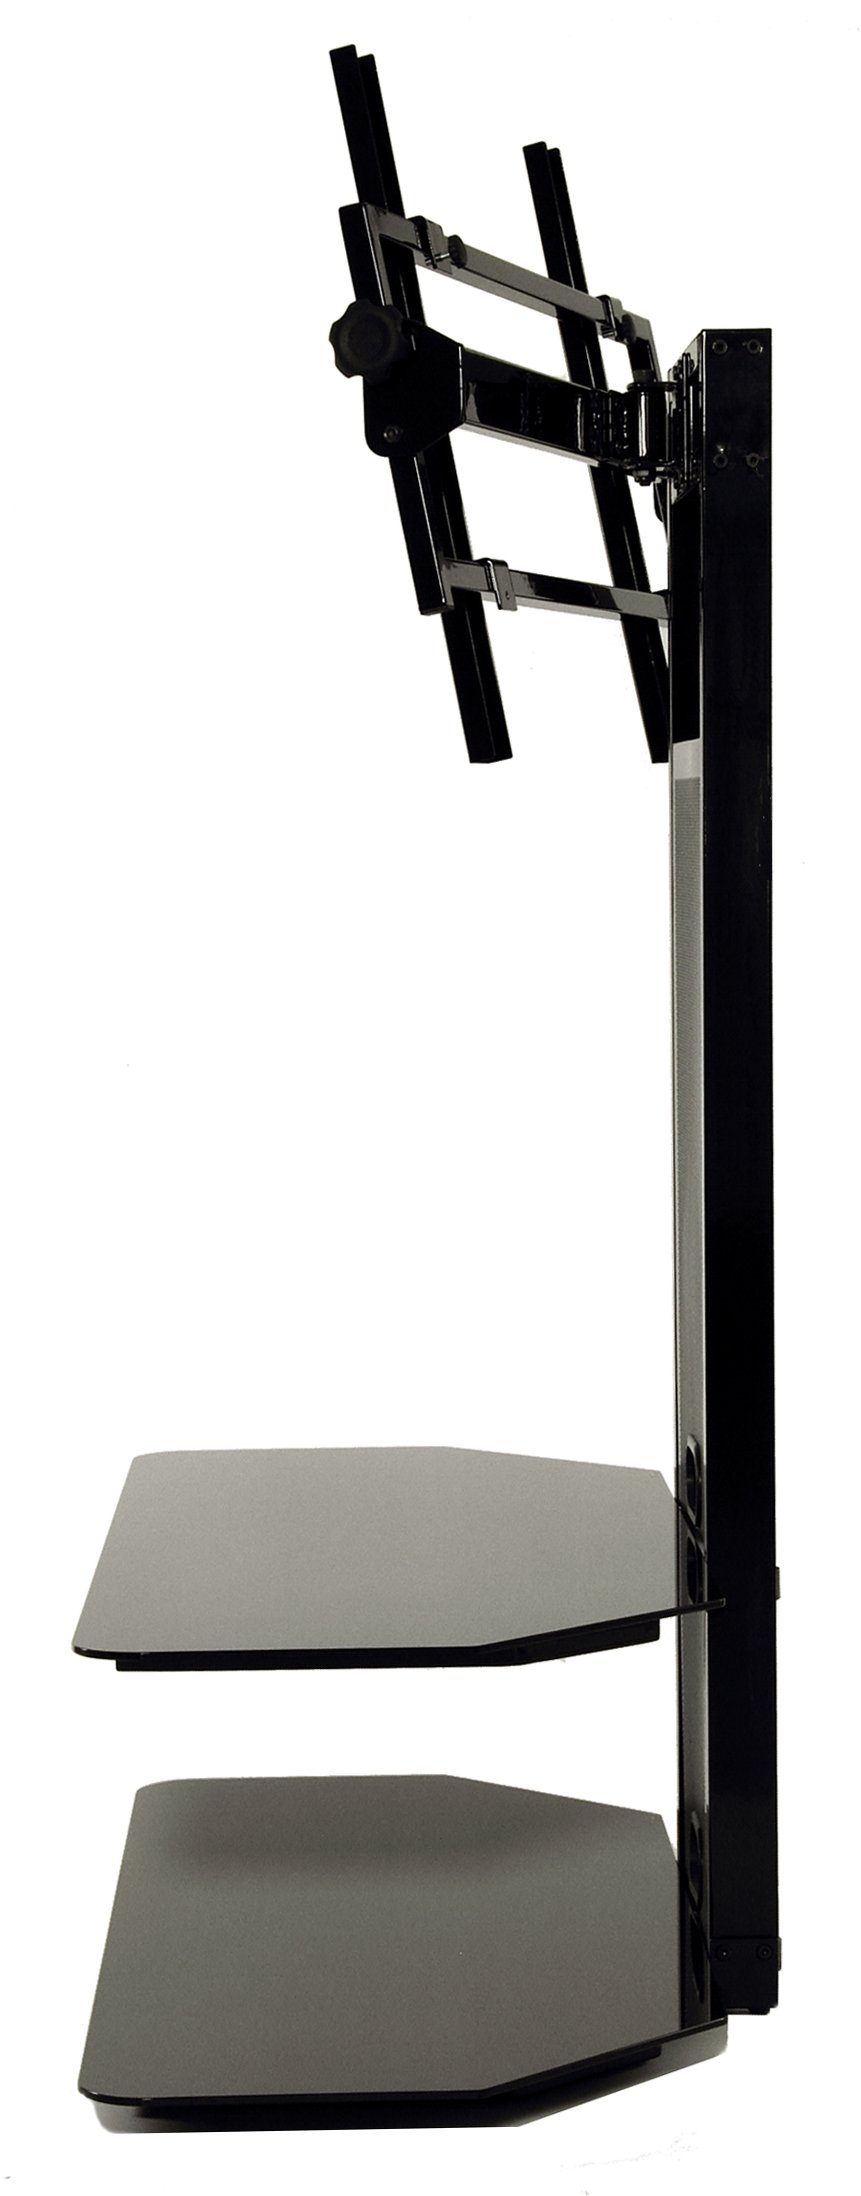 TransDeco TV Stand with Universal Mounting System for 35 to 65-Inch LCD/LED TV by TransDeco (Image #4)